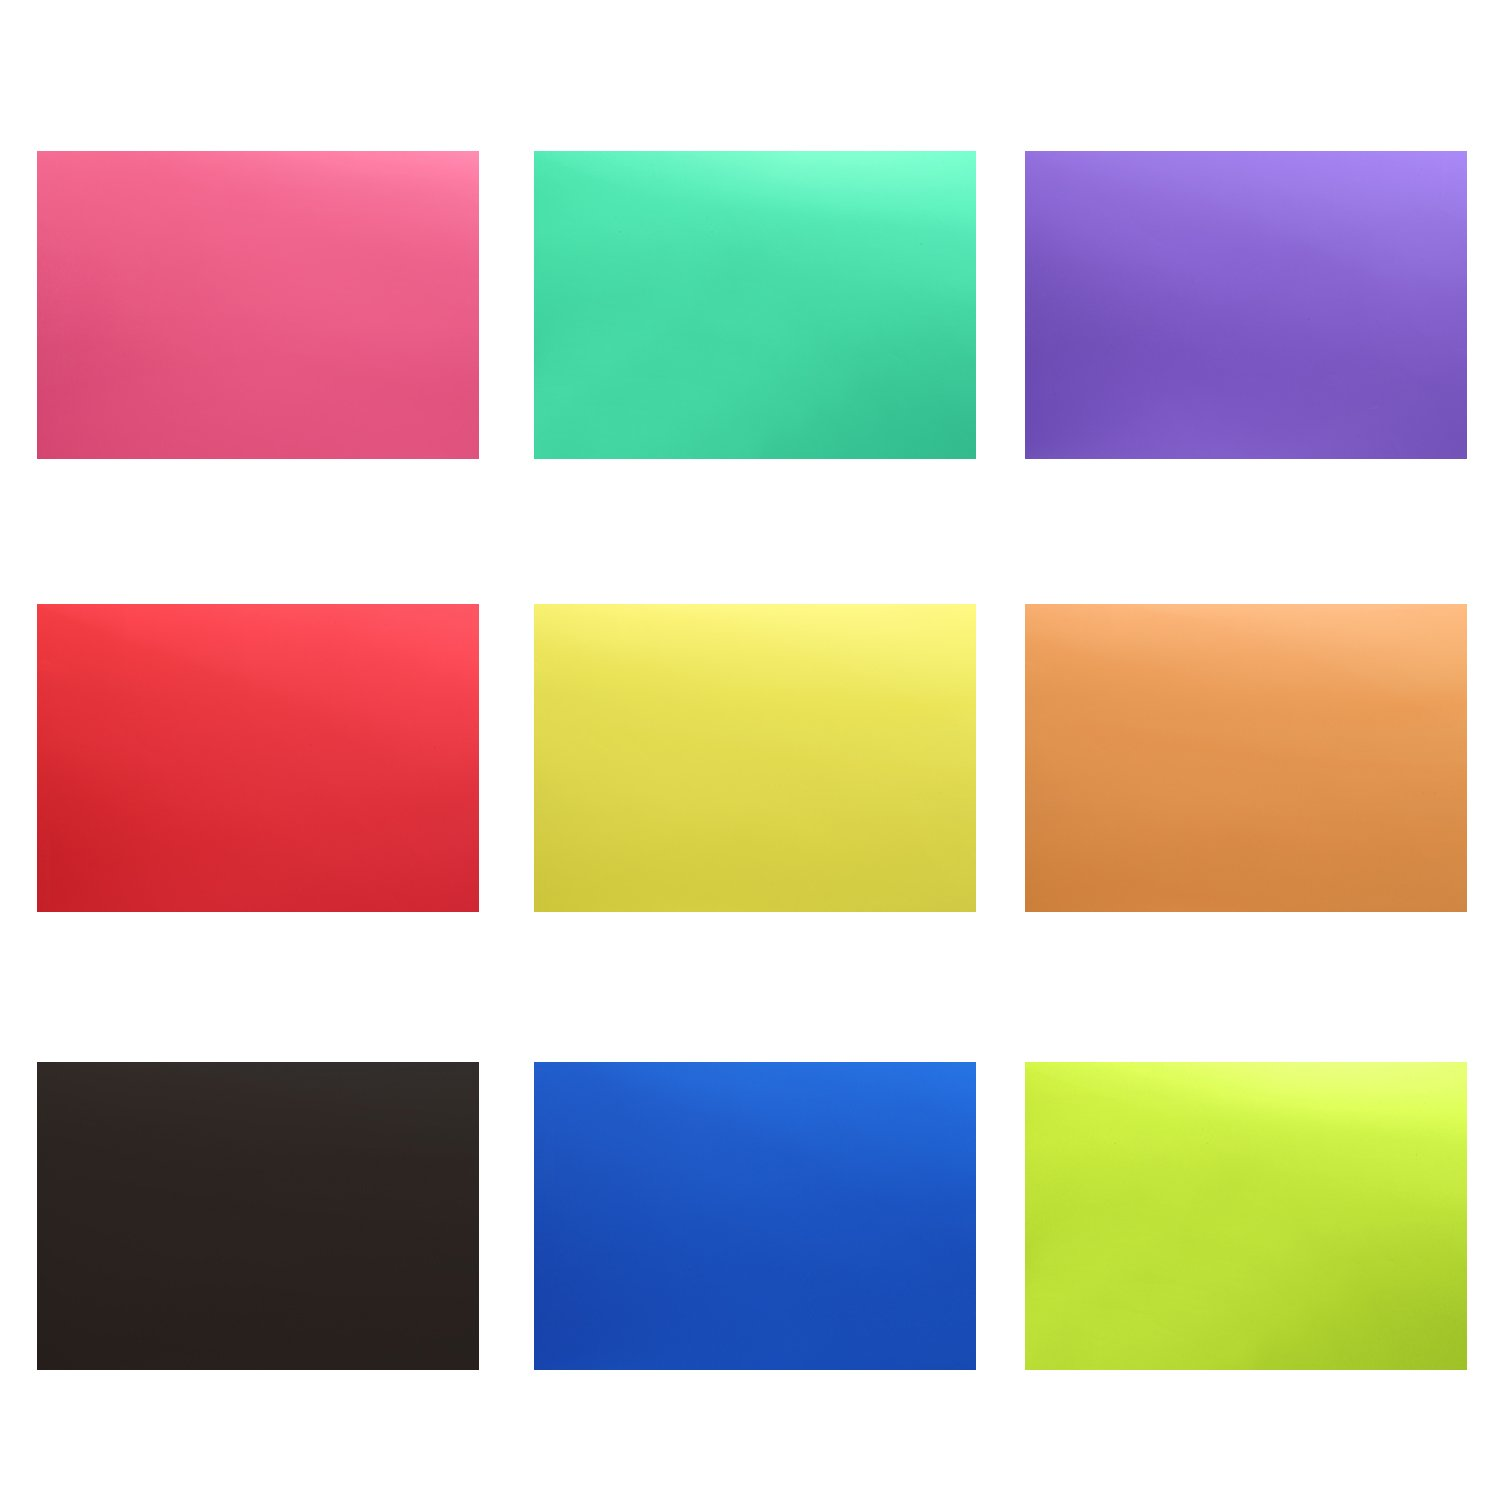 Neewer Correction Gel Light Filter Transparent Color 12x8.5 inches/30x20 centimeters 18 Sheet with 9 Colors: Red Blue Pink Cyan Purple Orange Green Yellow Black for Photo Studio Strobe Flash LED Light by Neewer